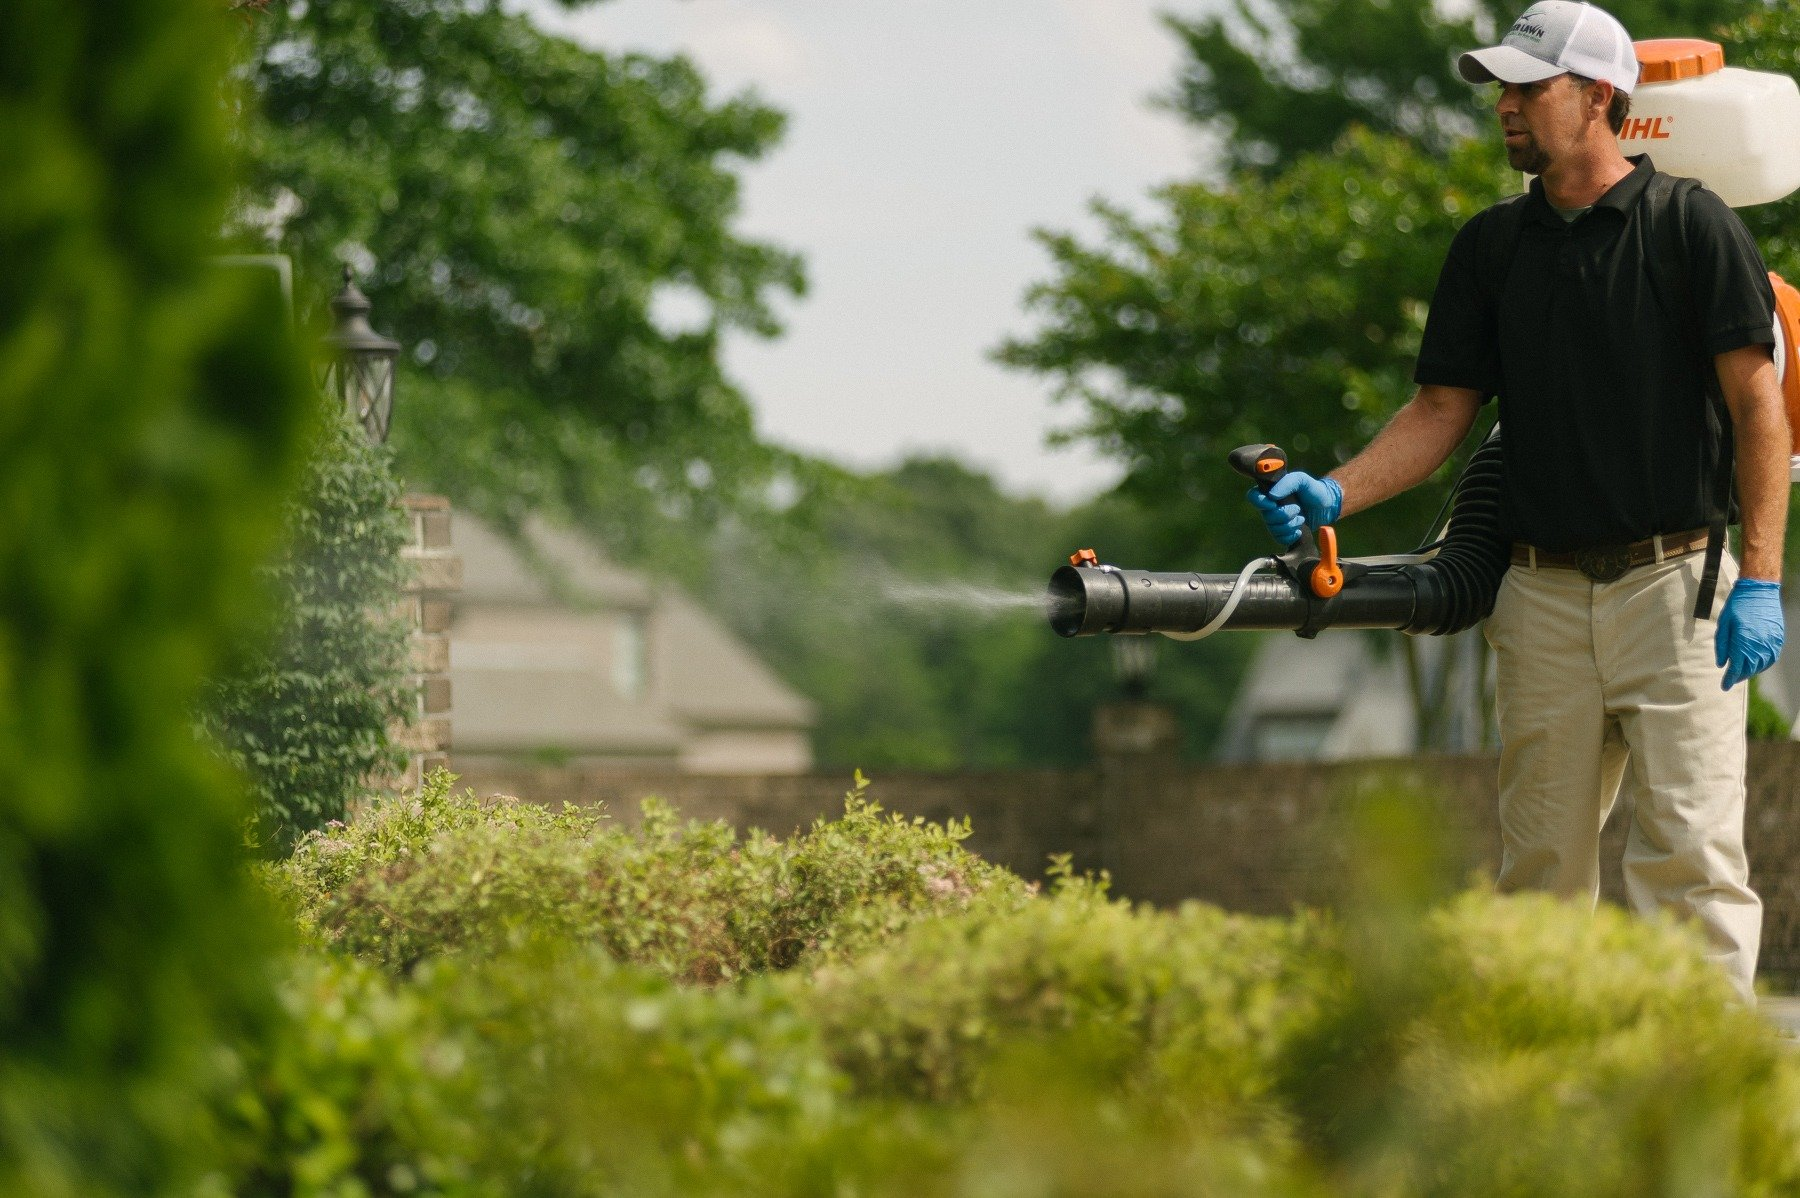 Mosquito control technician spraying in Memphis